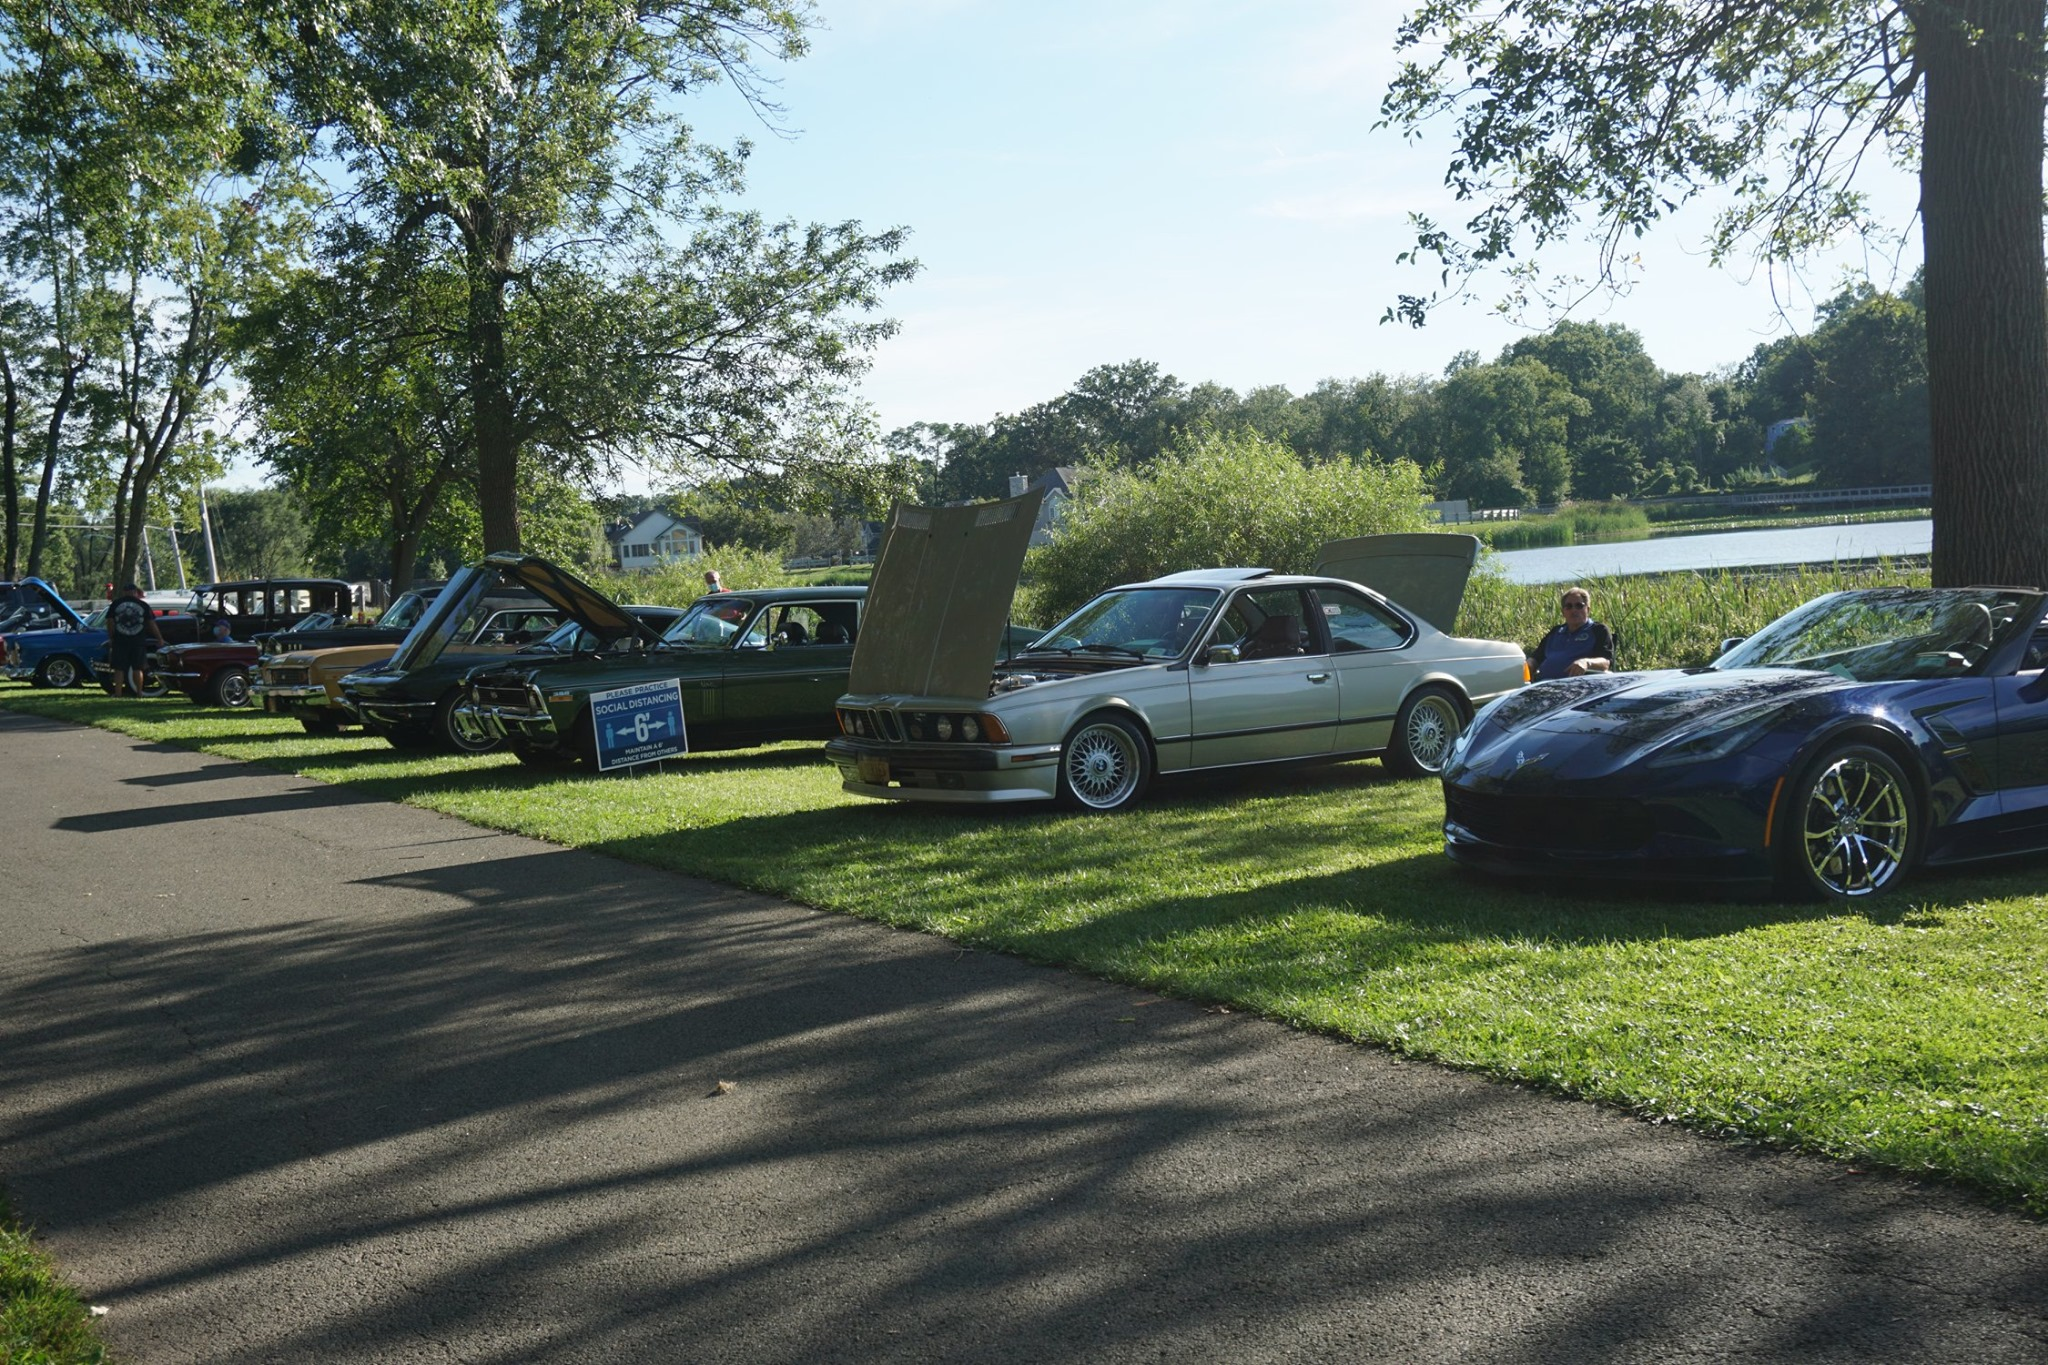 IN PERSON Town of Clarkstown Car Show at Congers Lake Memorial Park